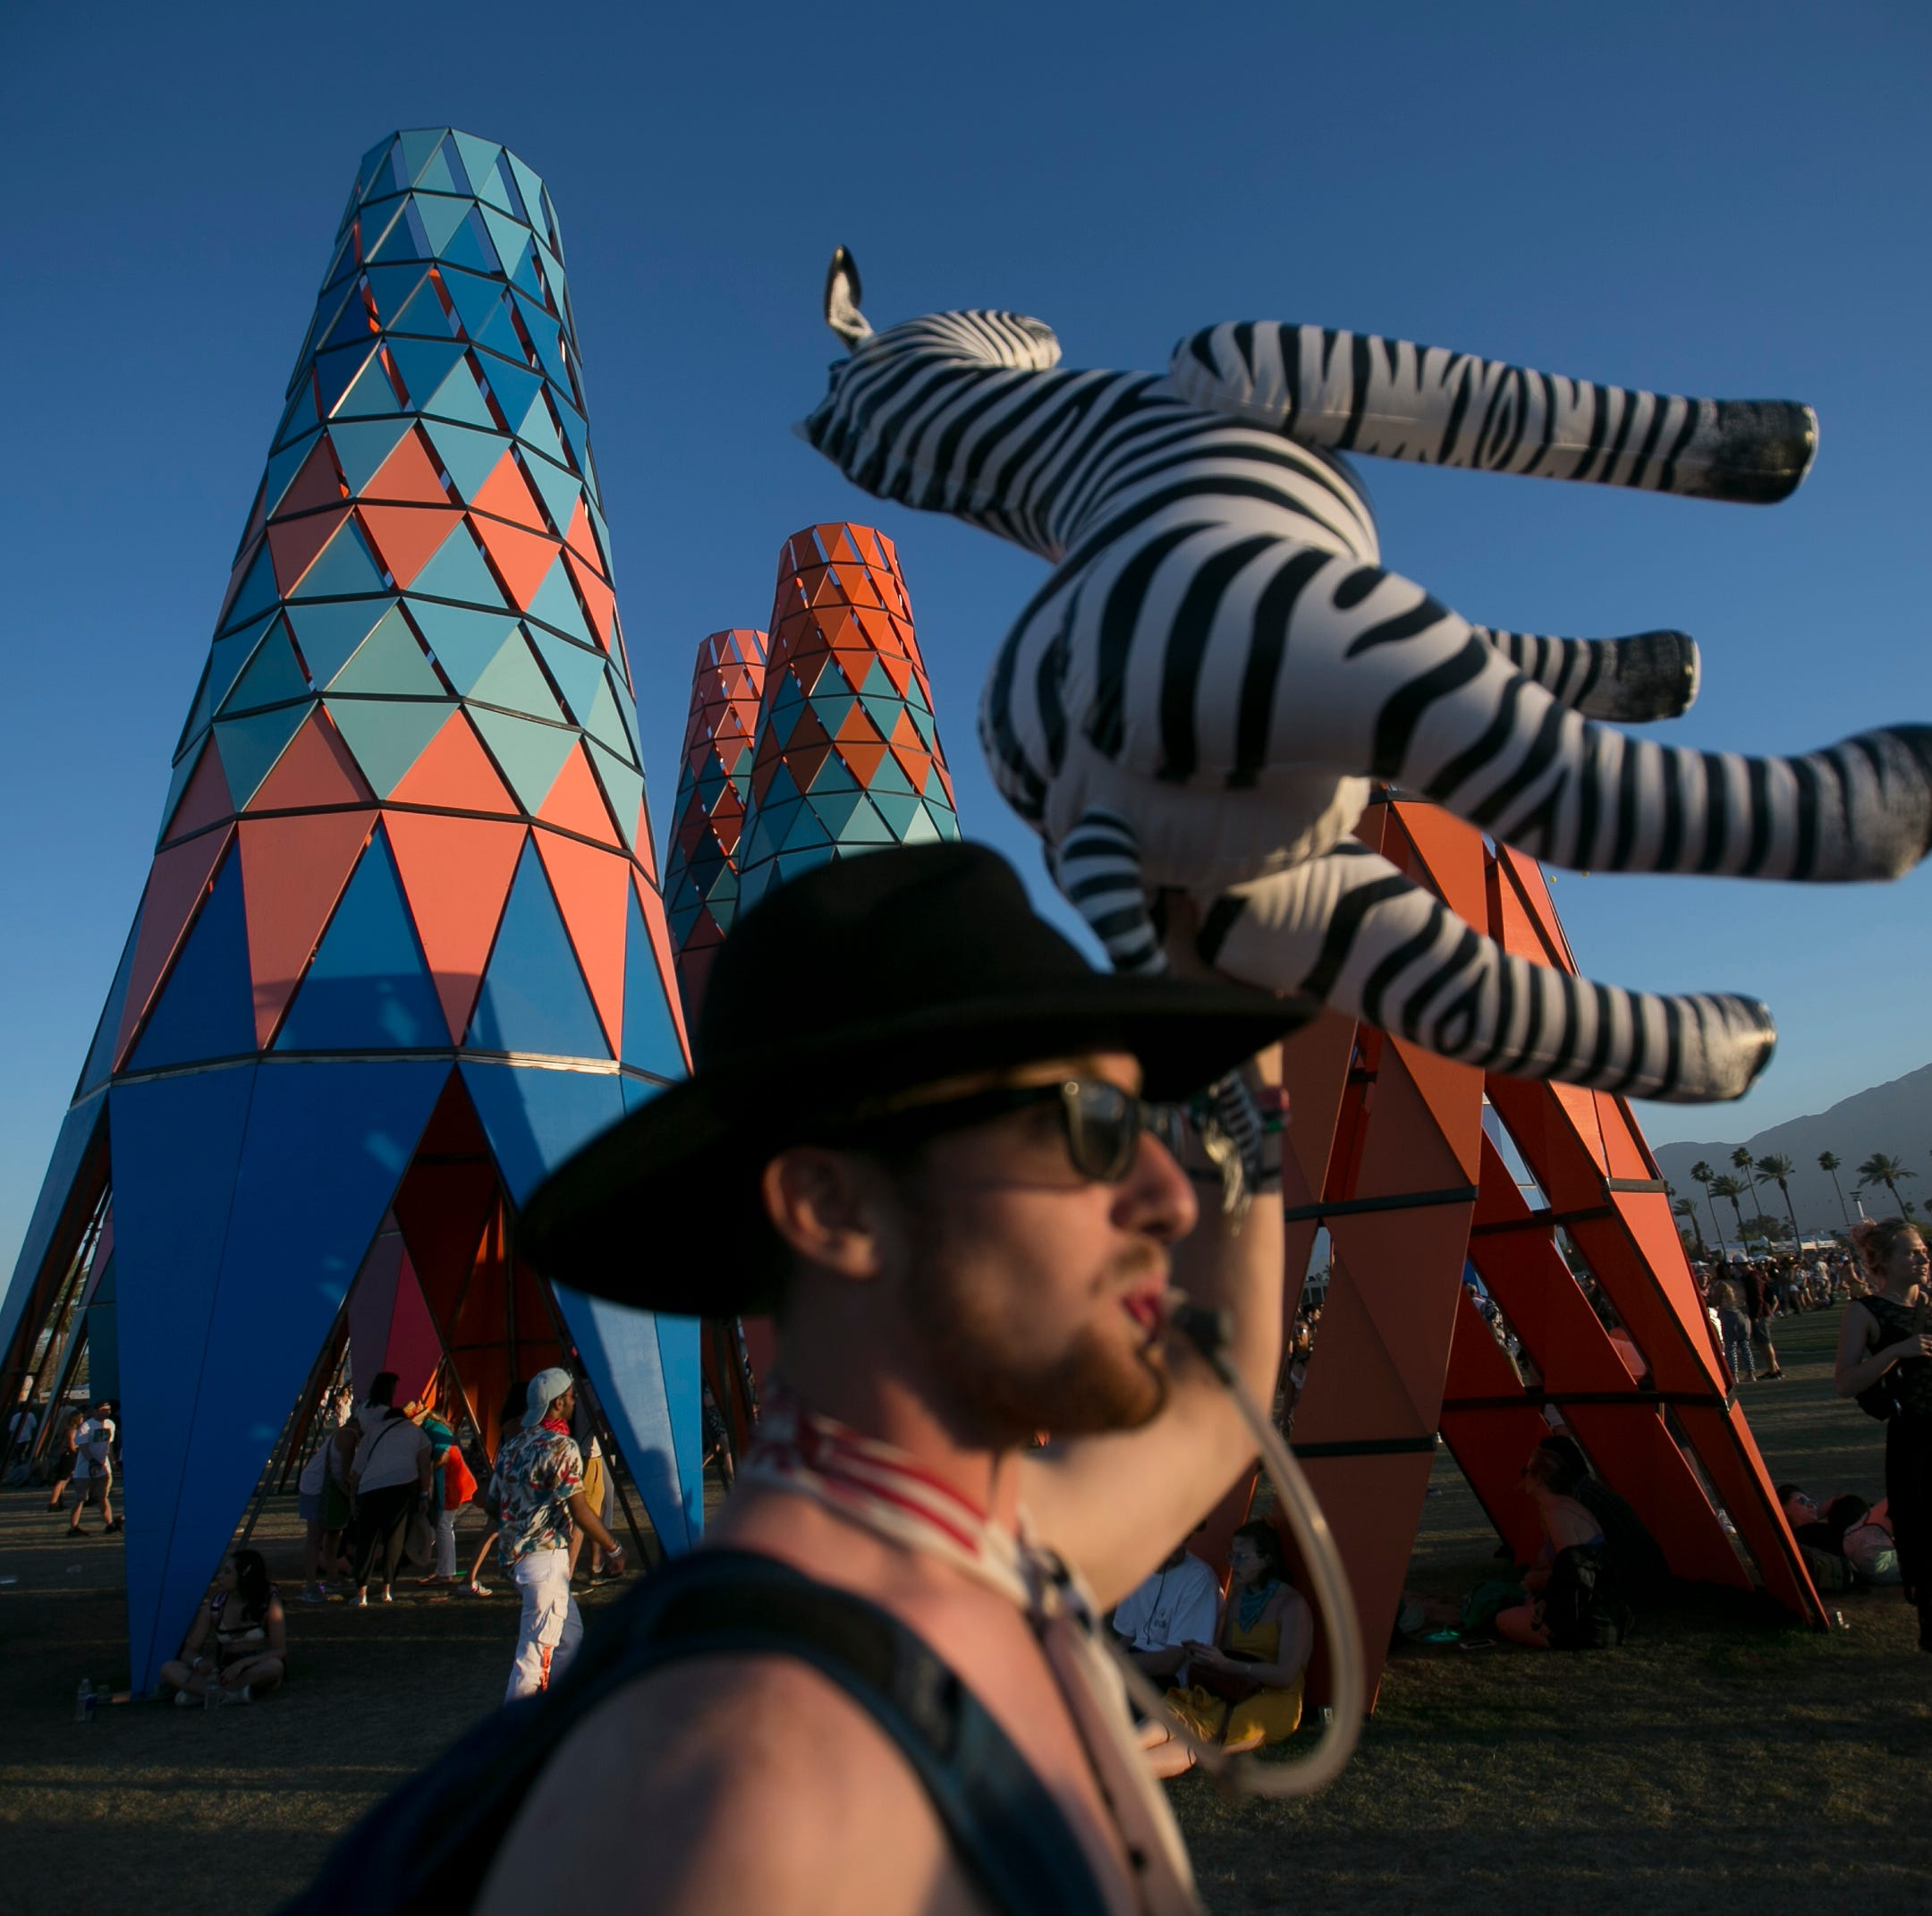 Sharing Coachella fest's art with the public at large could reap rewards